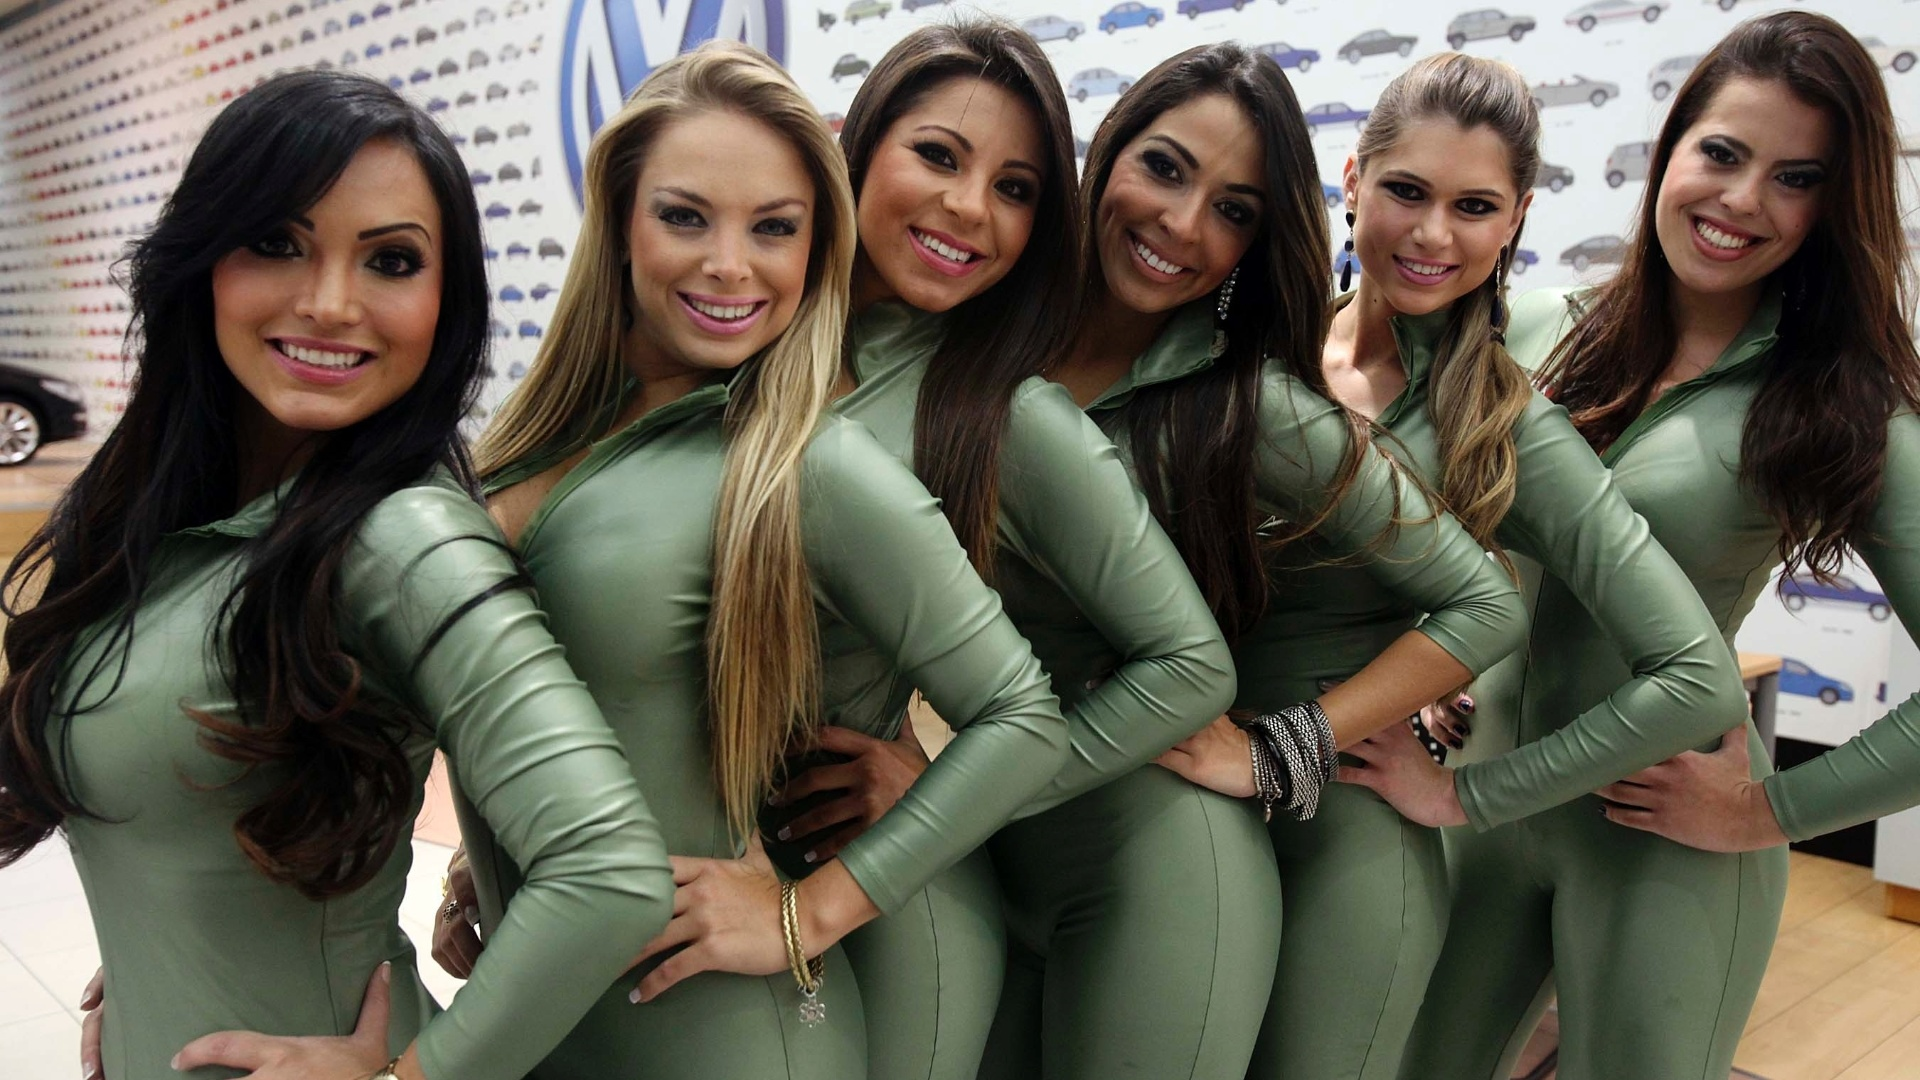 Candidatas a gata da Frmula Indy exibem sua beleza